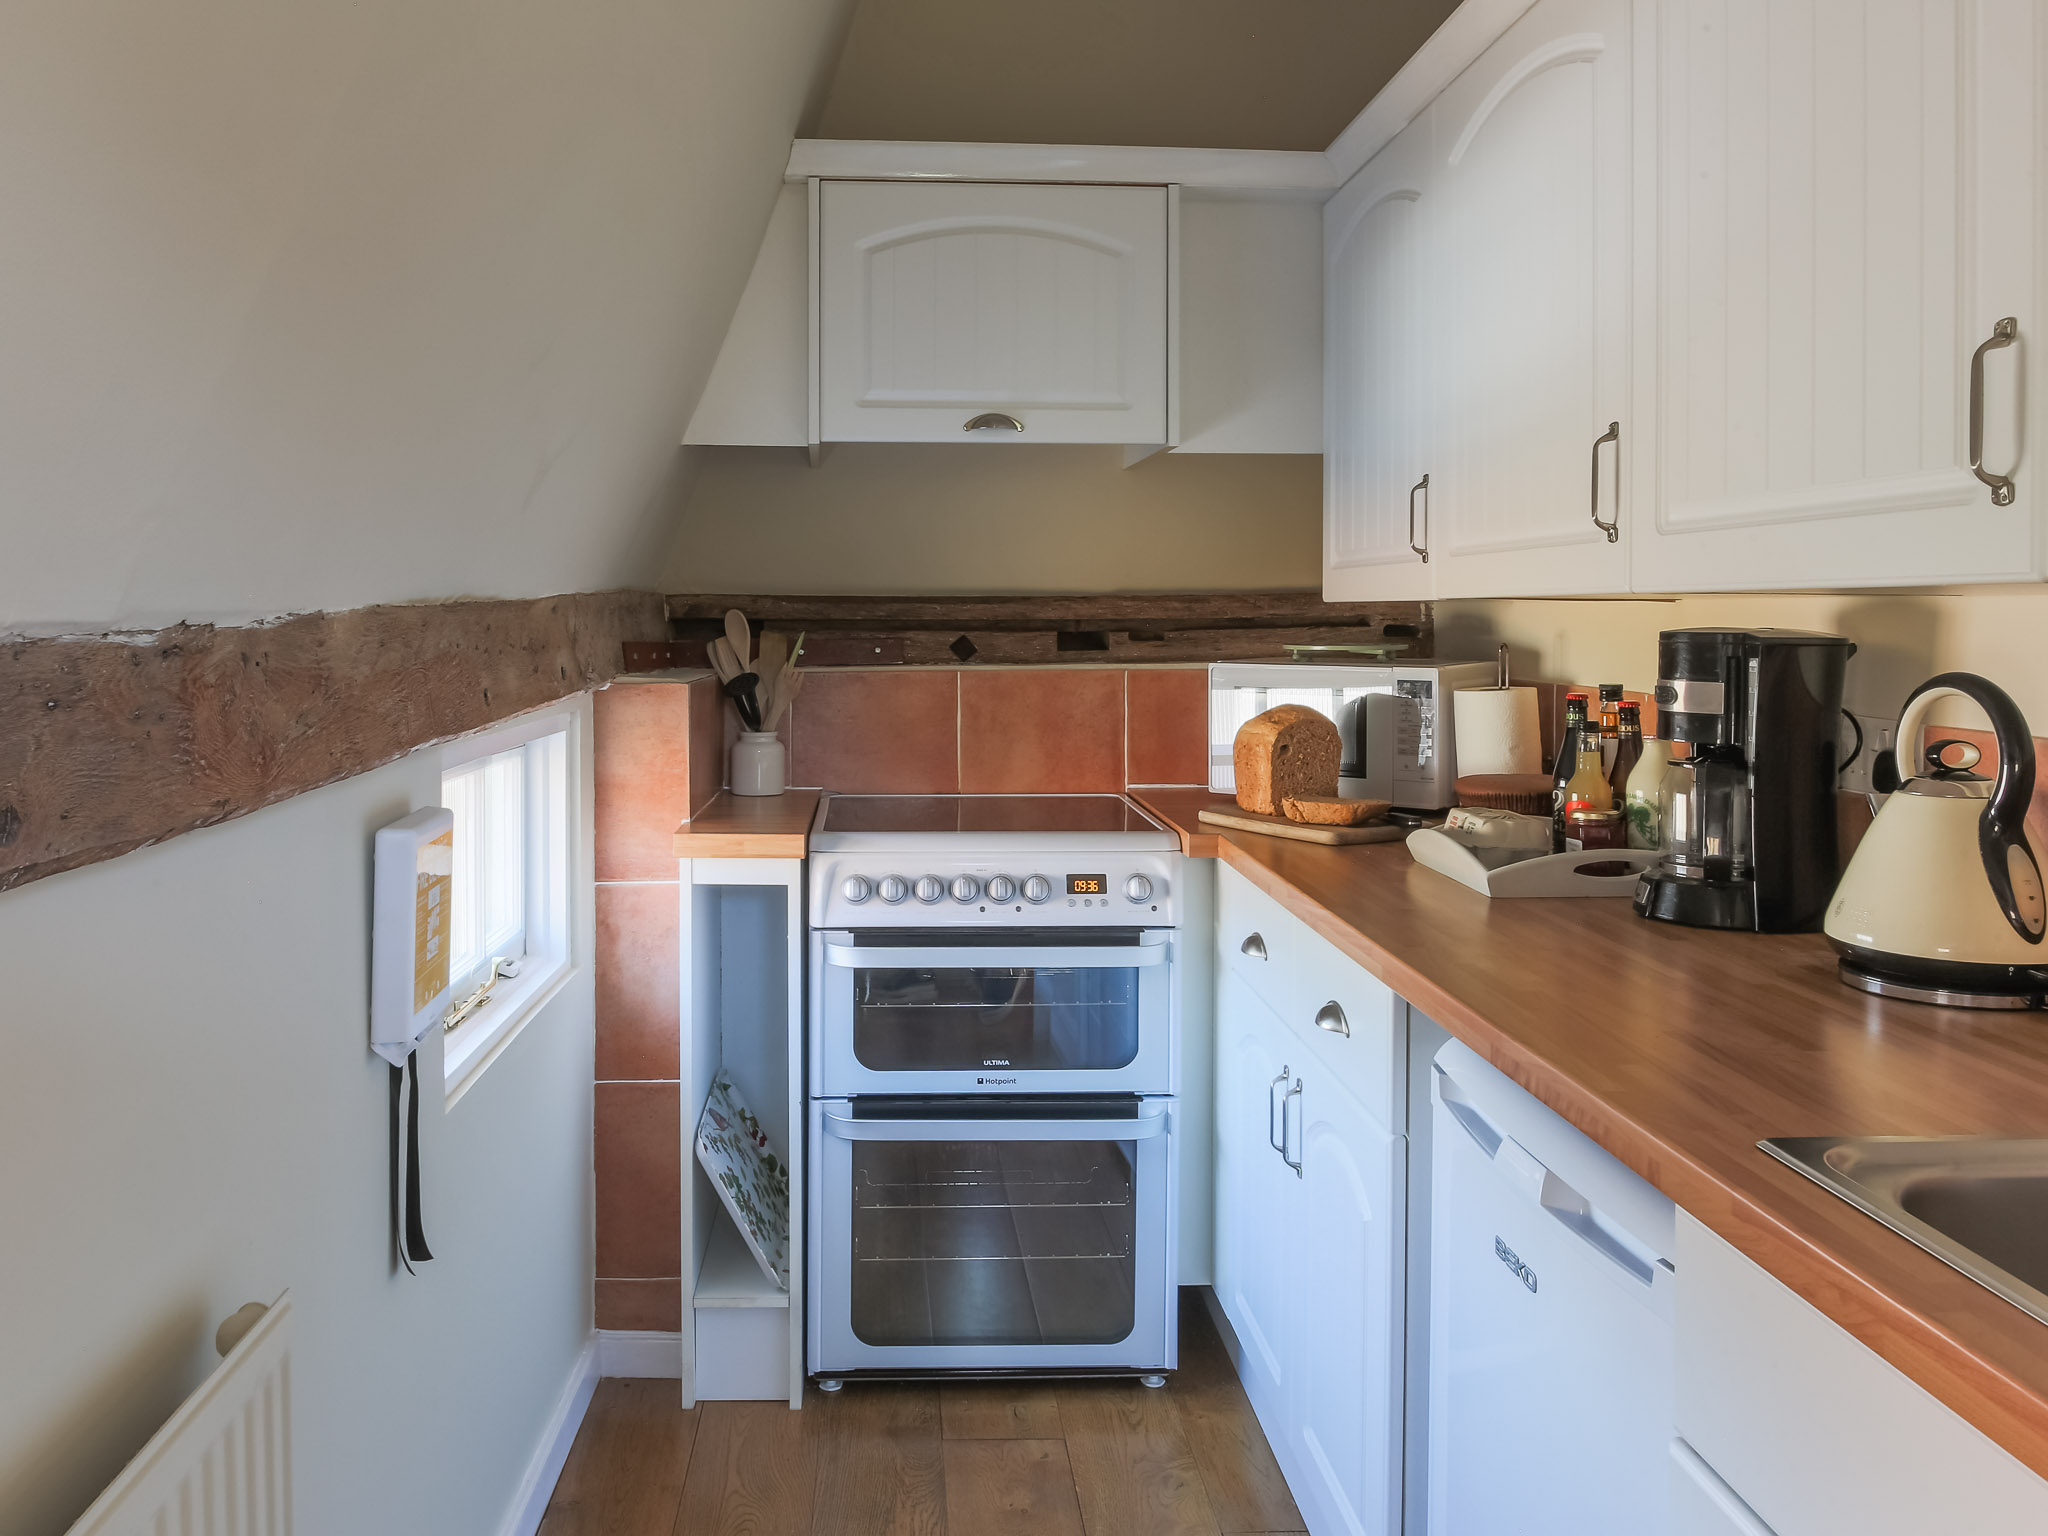 The galley kitchen leads off from the dining area